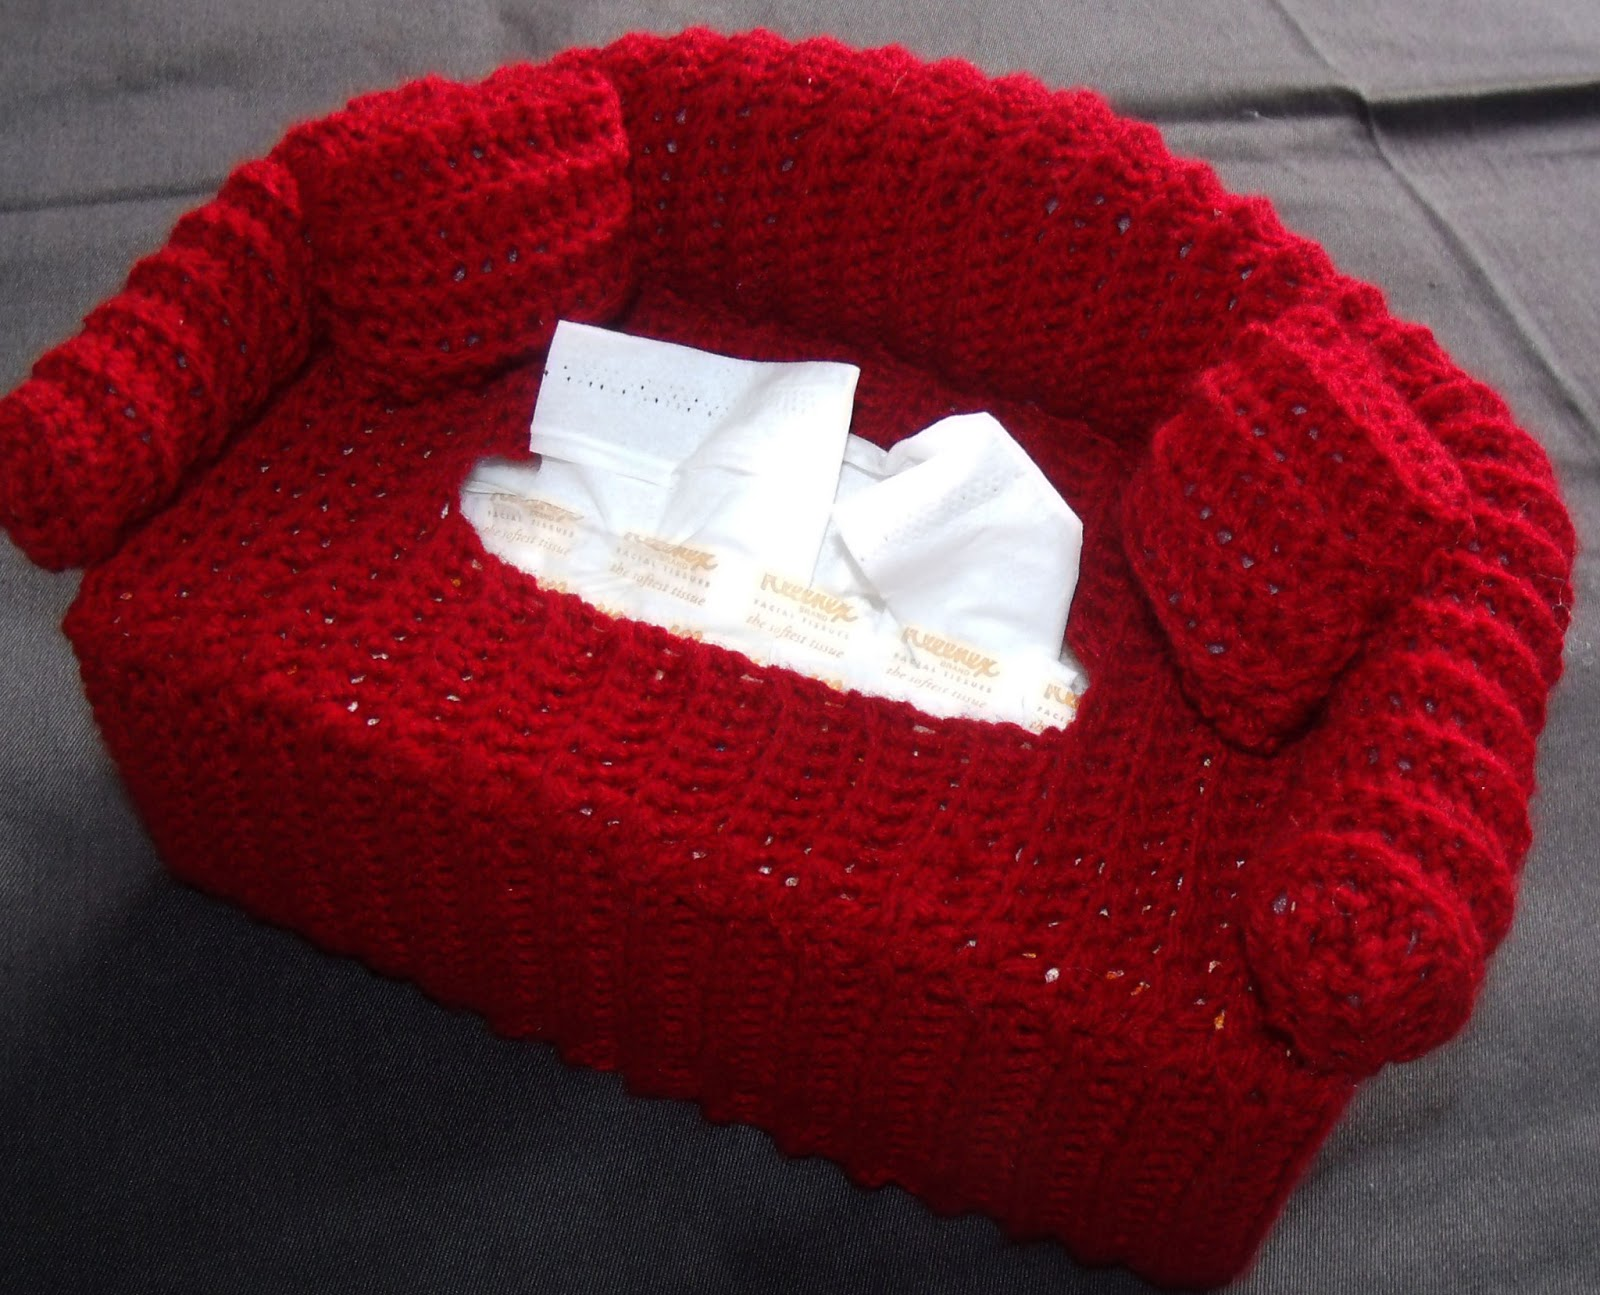 crochet sofa cover patterns font awesome jewellery from craft cove couch